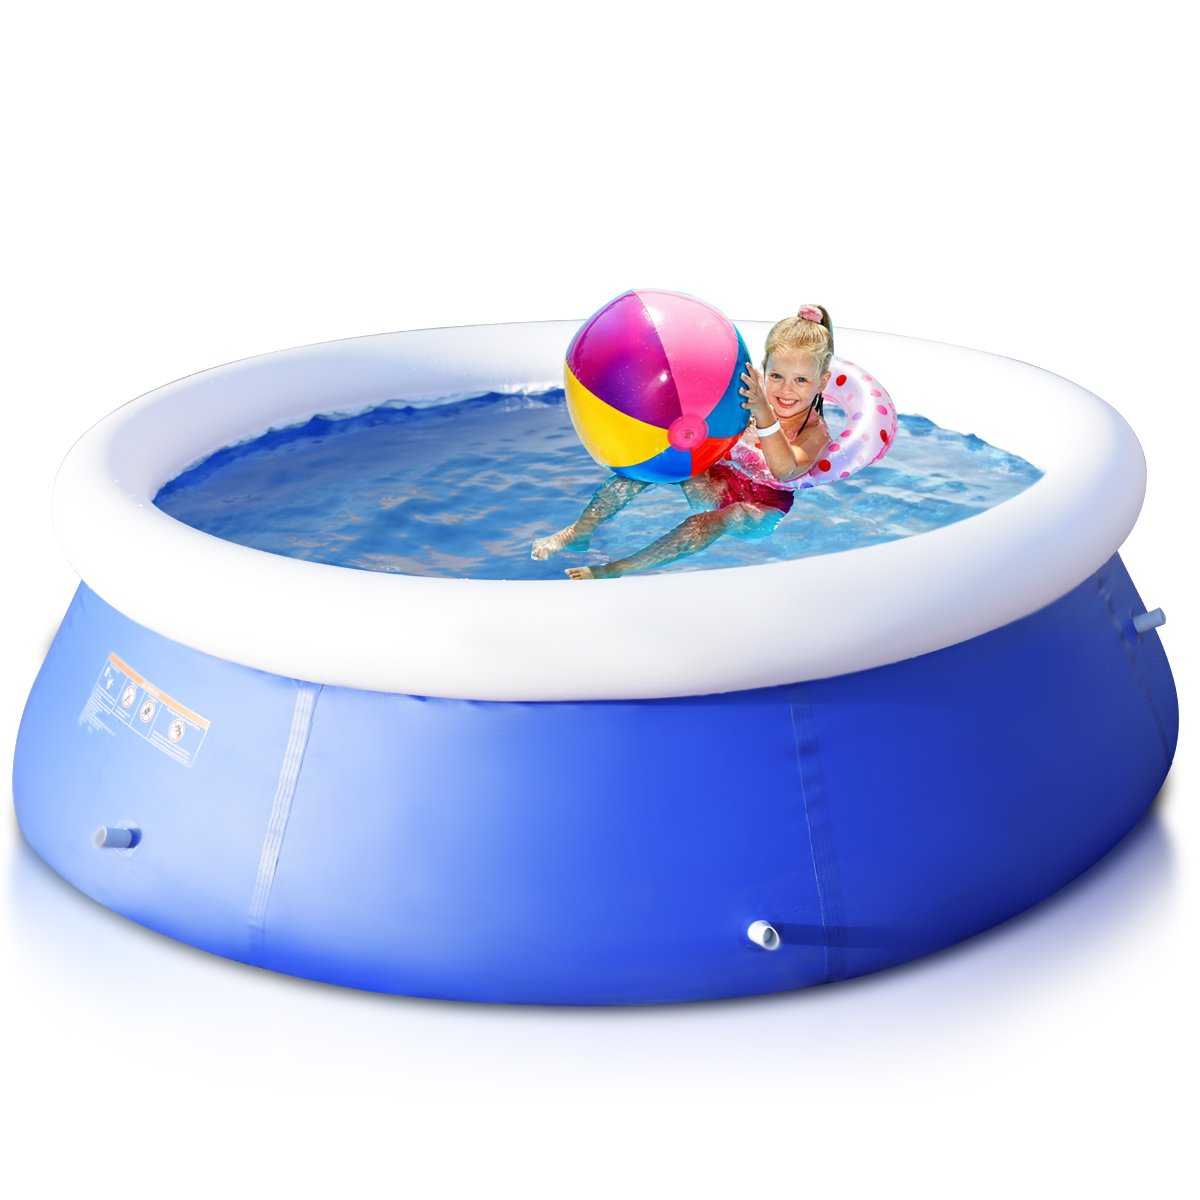 Goplus Inflatable Swimming Pool Family Lounge Pool Swim Play Center Easy Set Pool without Pump, 8' x 30'' (Blue) by Goplus (Image #7)